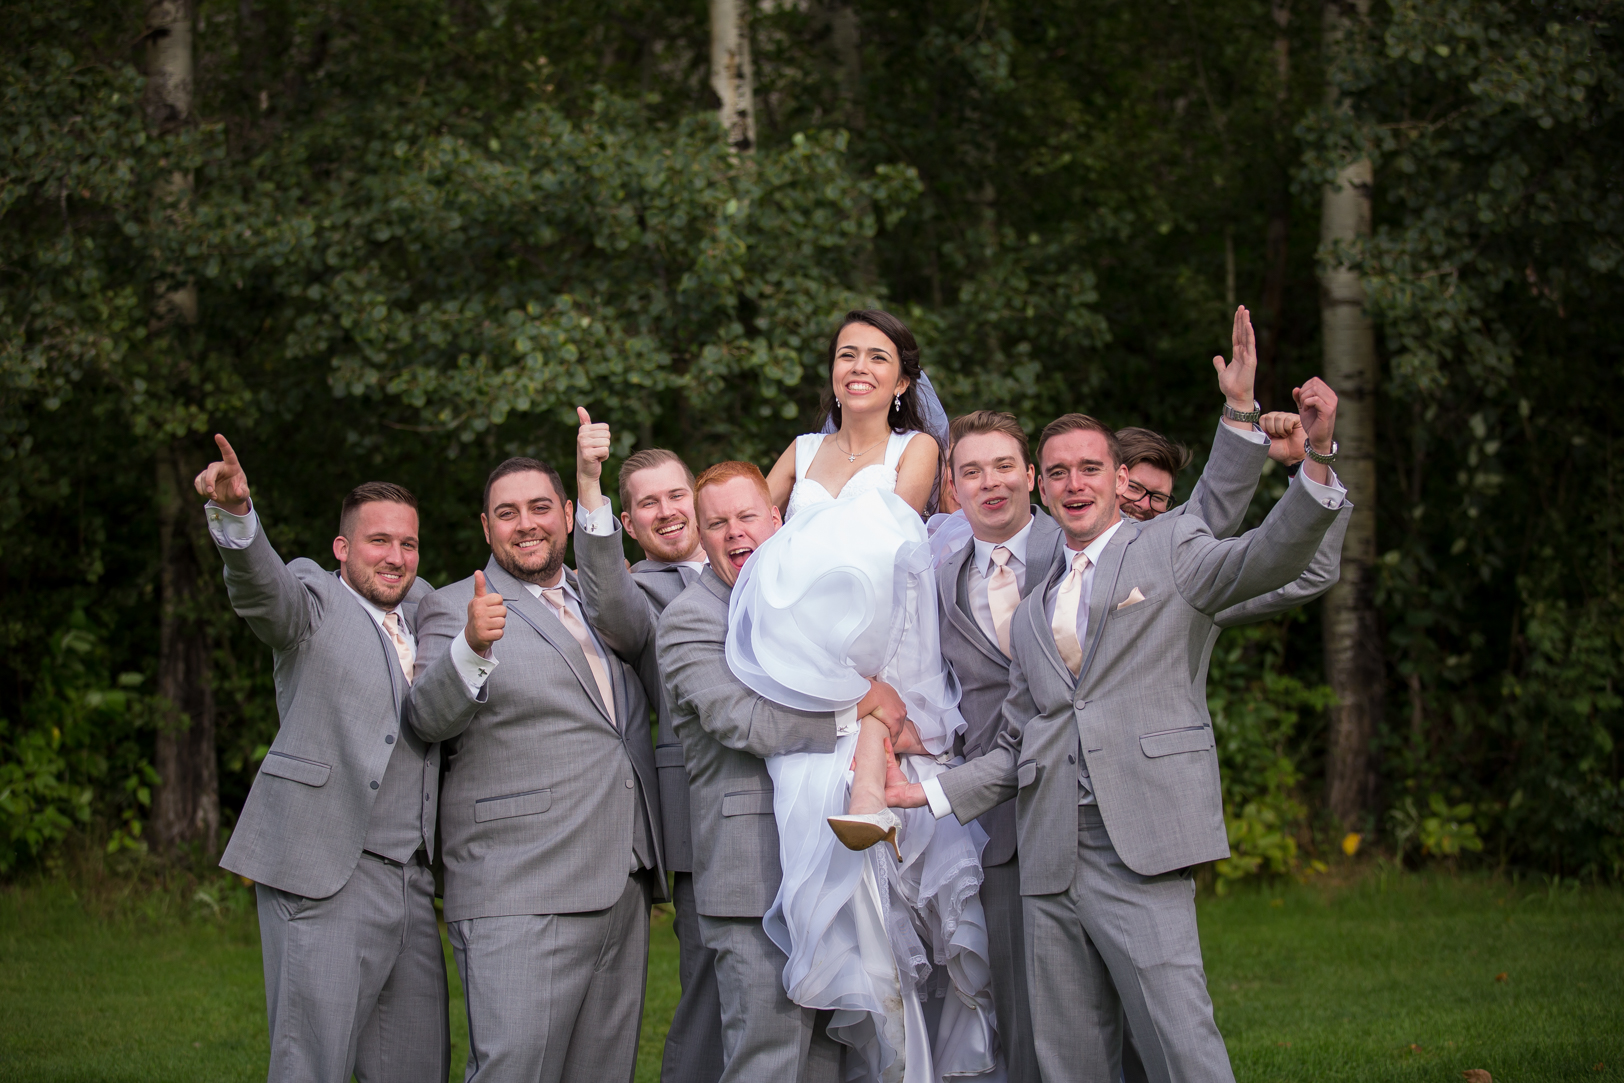 Bride and Groomsmen Photos